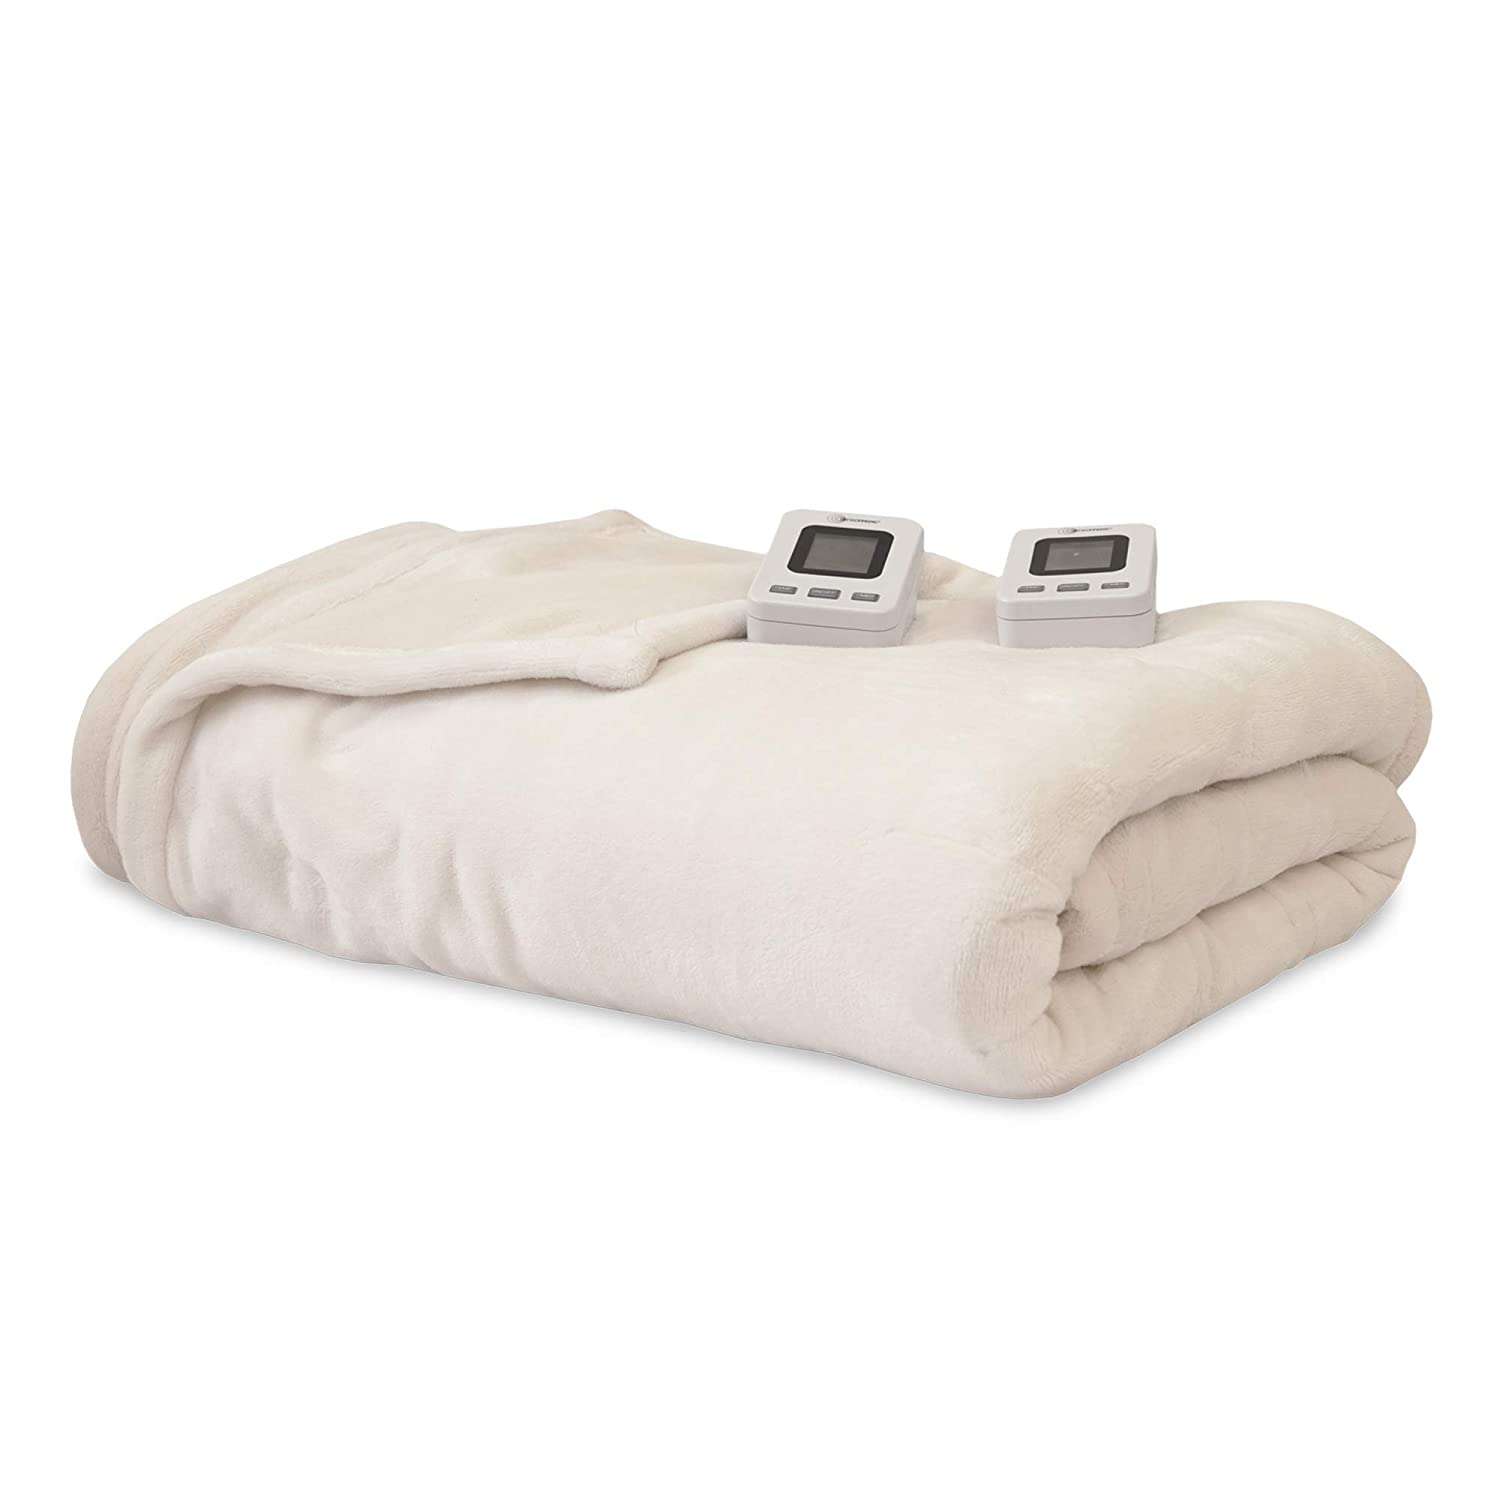 Ivory Queen SensorPedic Heated Electric Blanket with Sensor-Safe